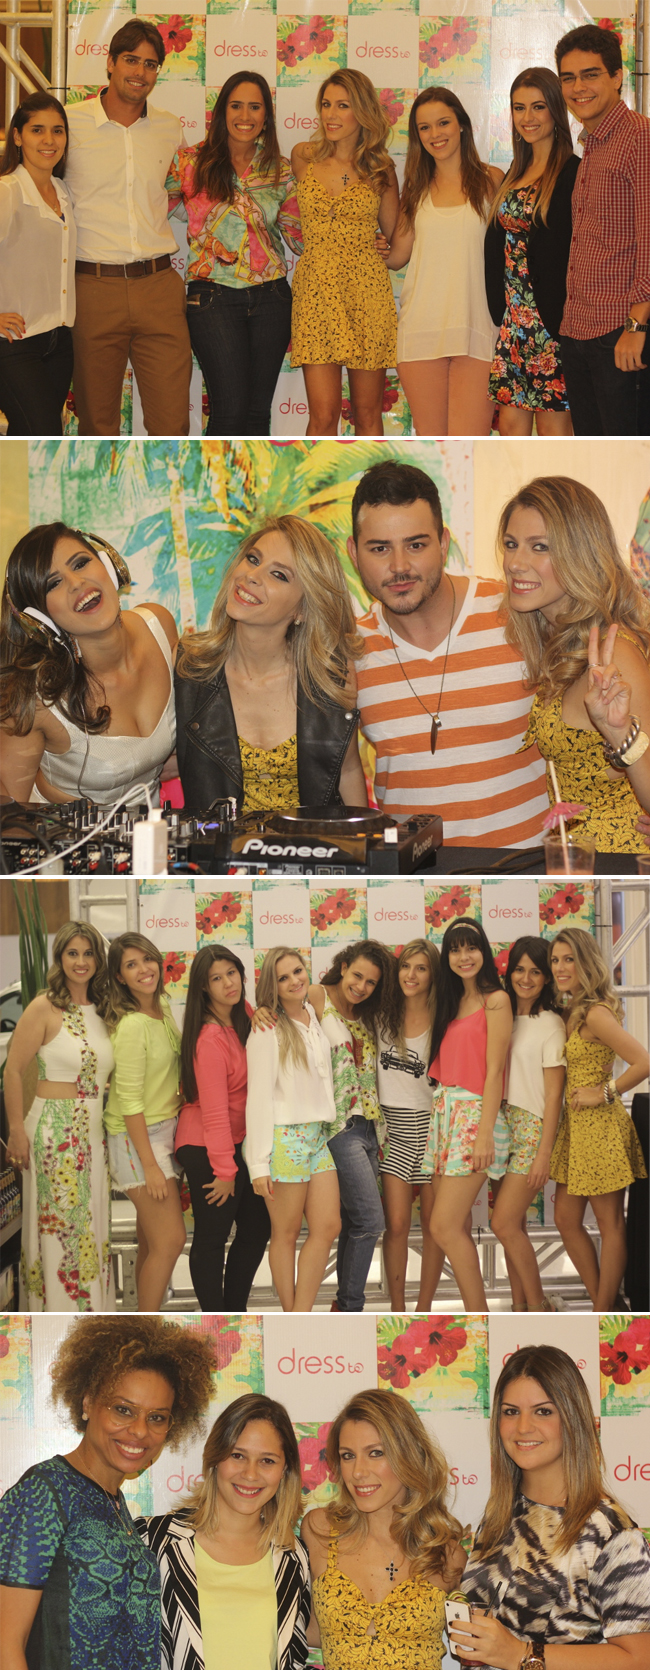 Glam4You por Nati Vozza | Evento: Dress To Uberlândia